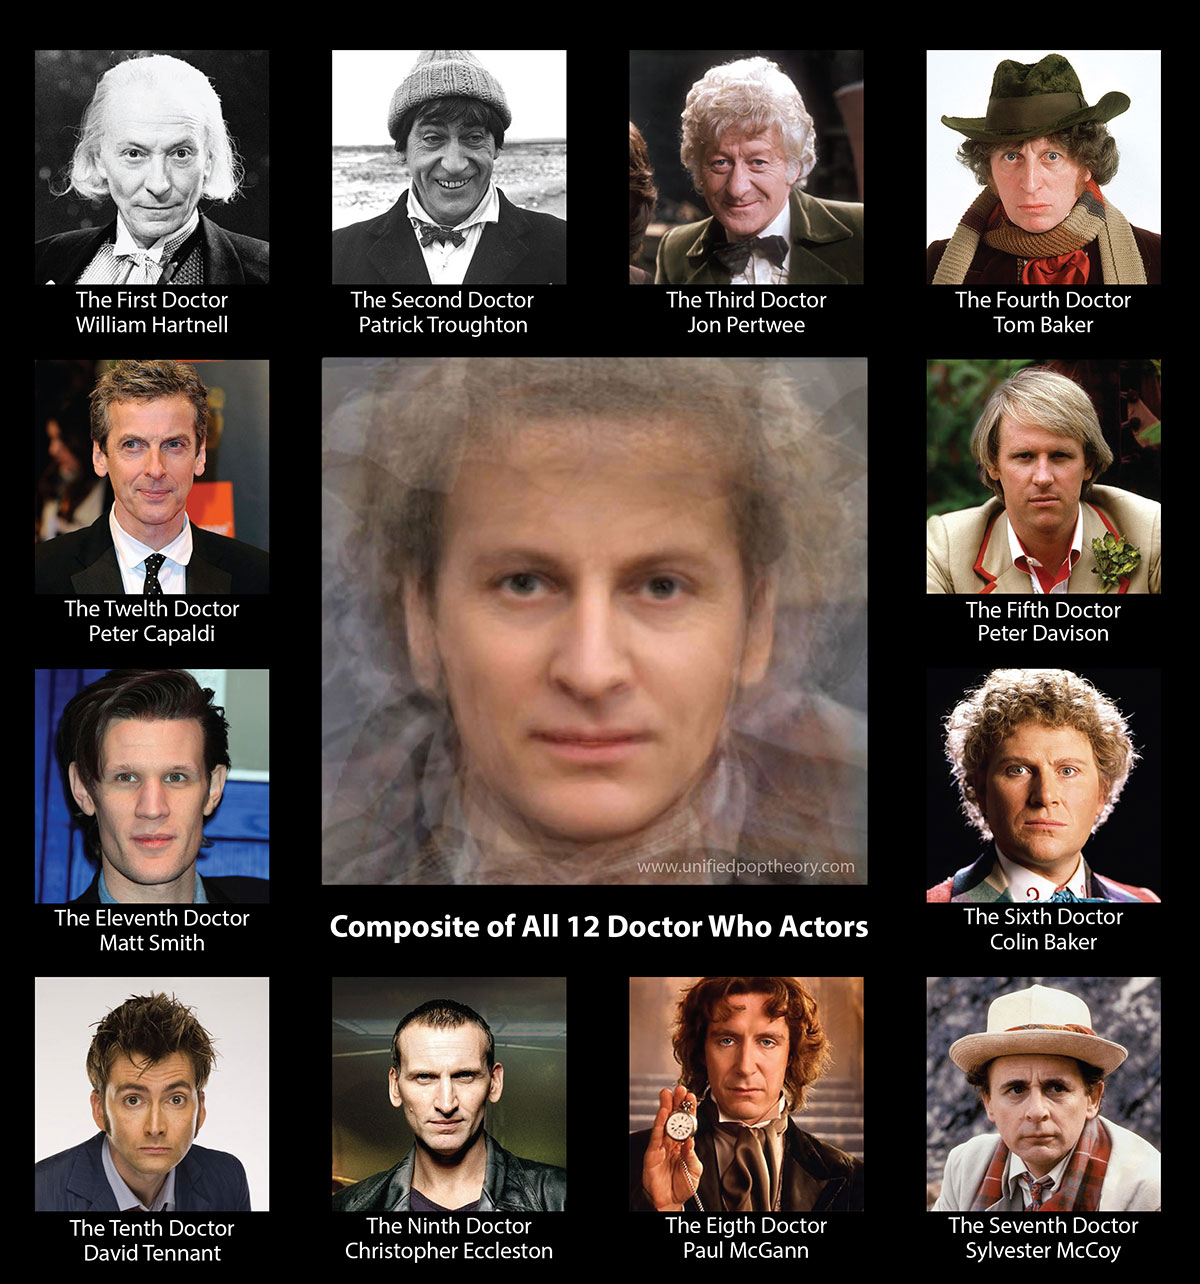 Composite of All 12 Doctor Who Actors